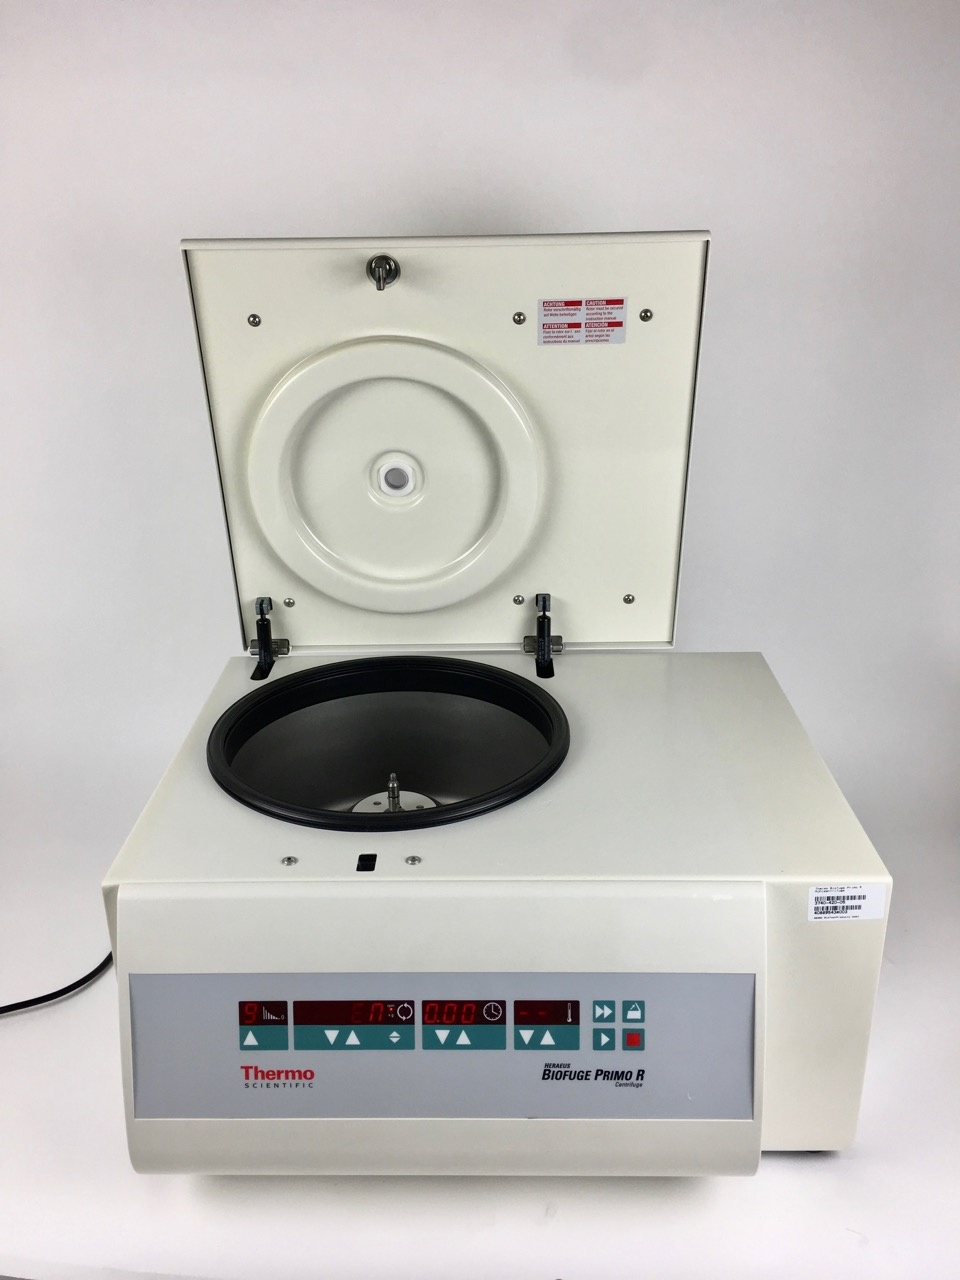 Thermo Biofuge Primo R Refrigerated Centrifuge